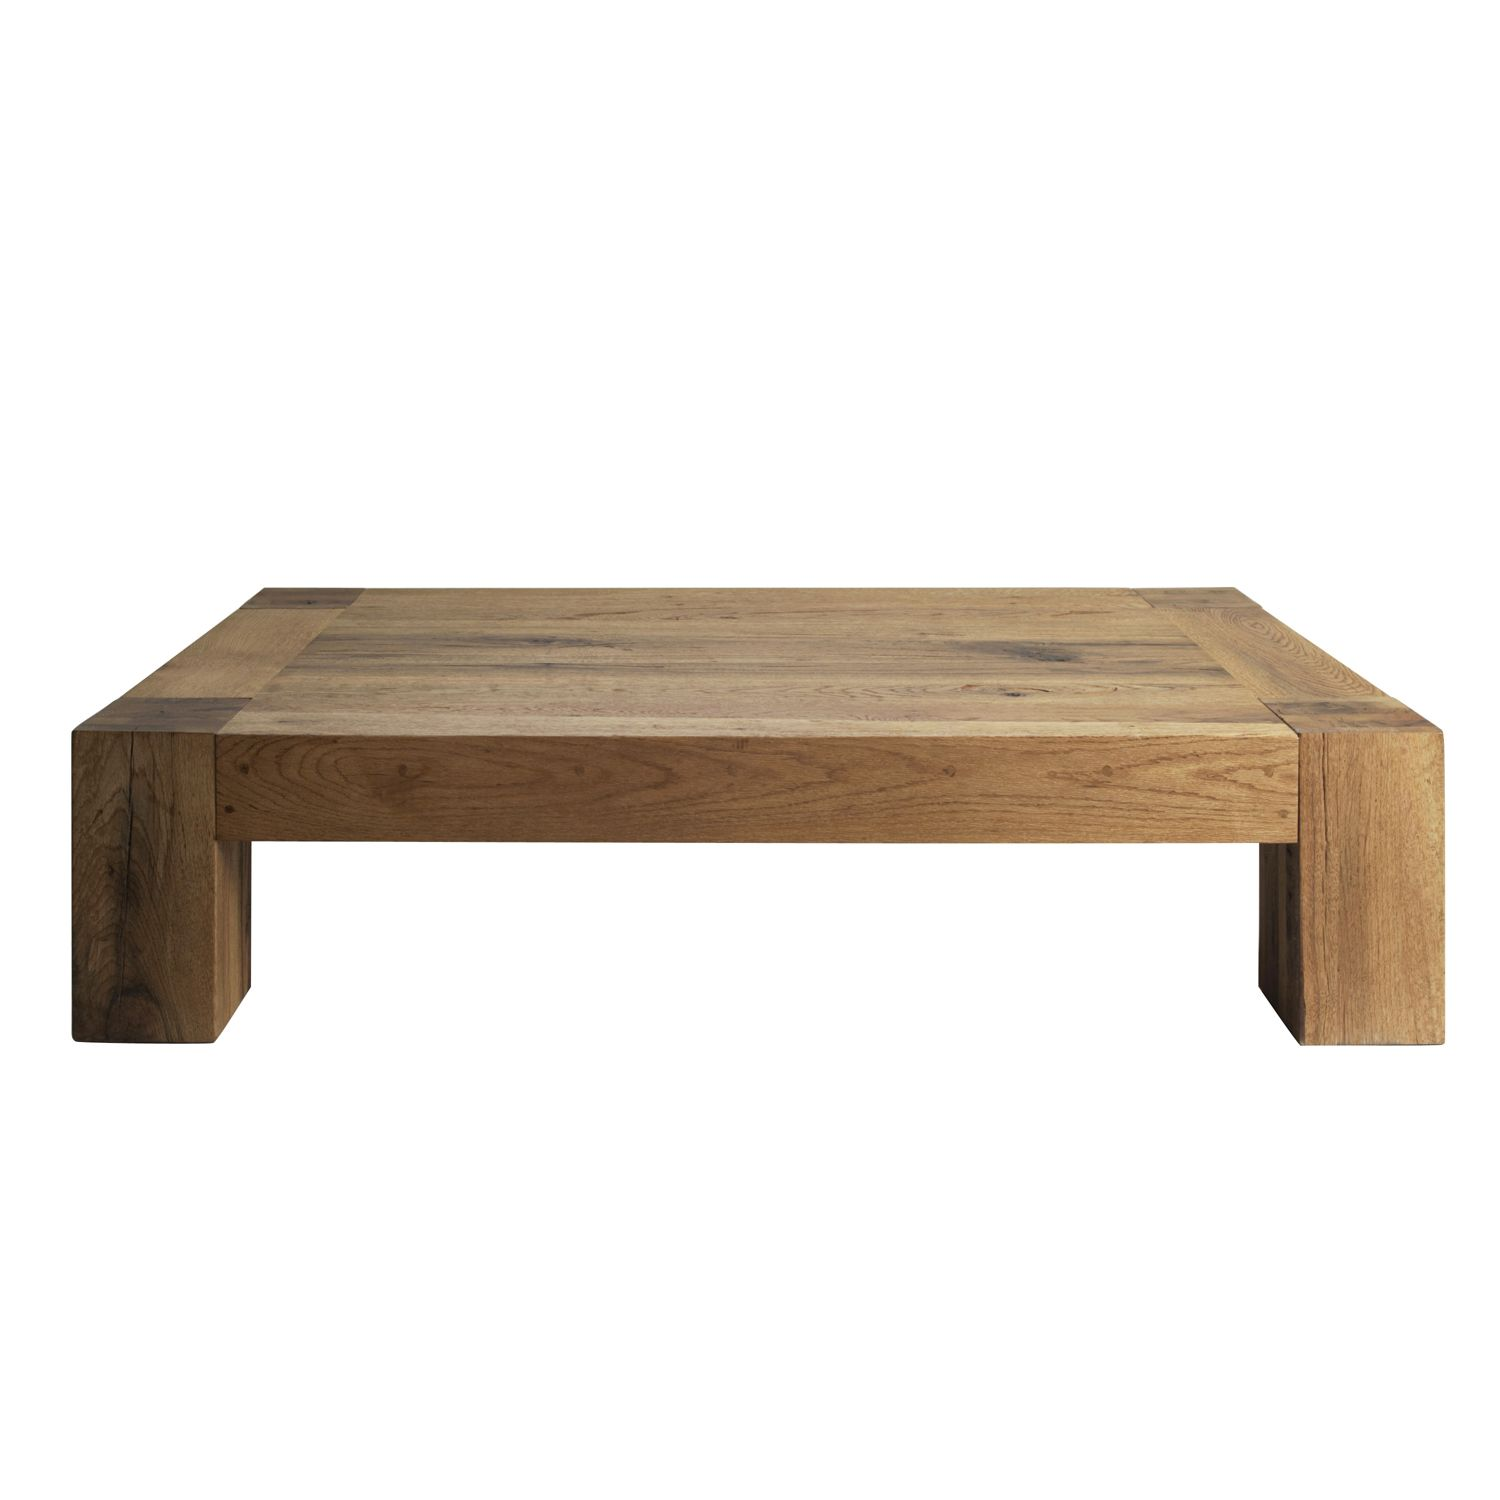 Heal 39 s umbrian coffee table wild oak church conversion for Low coffee table wood